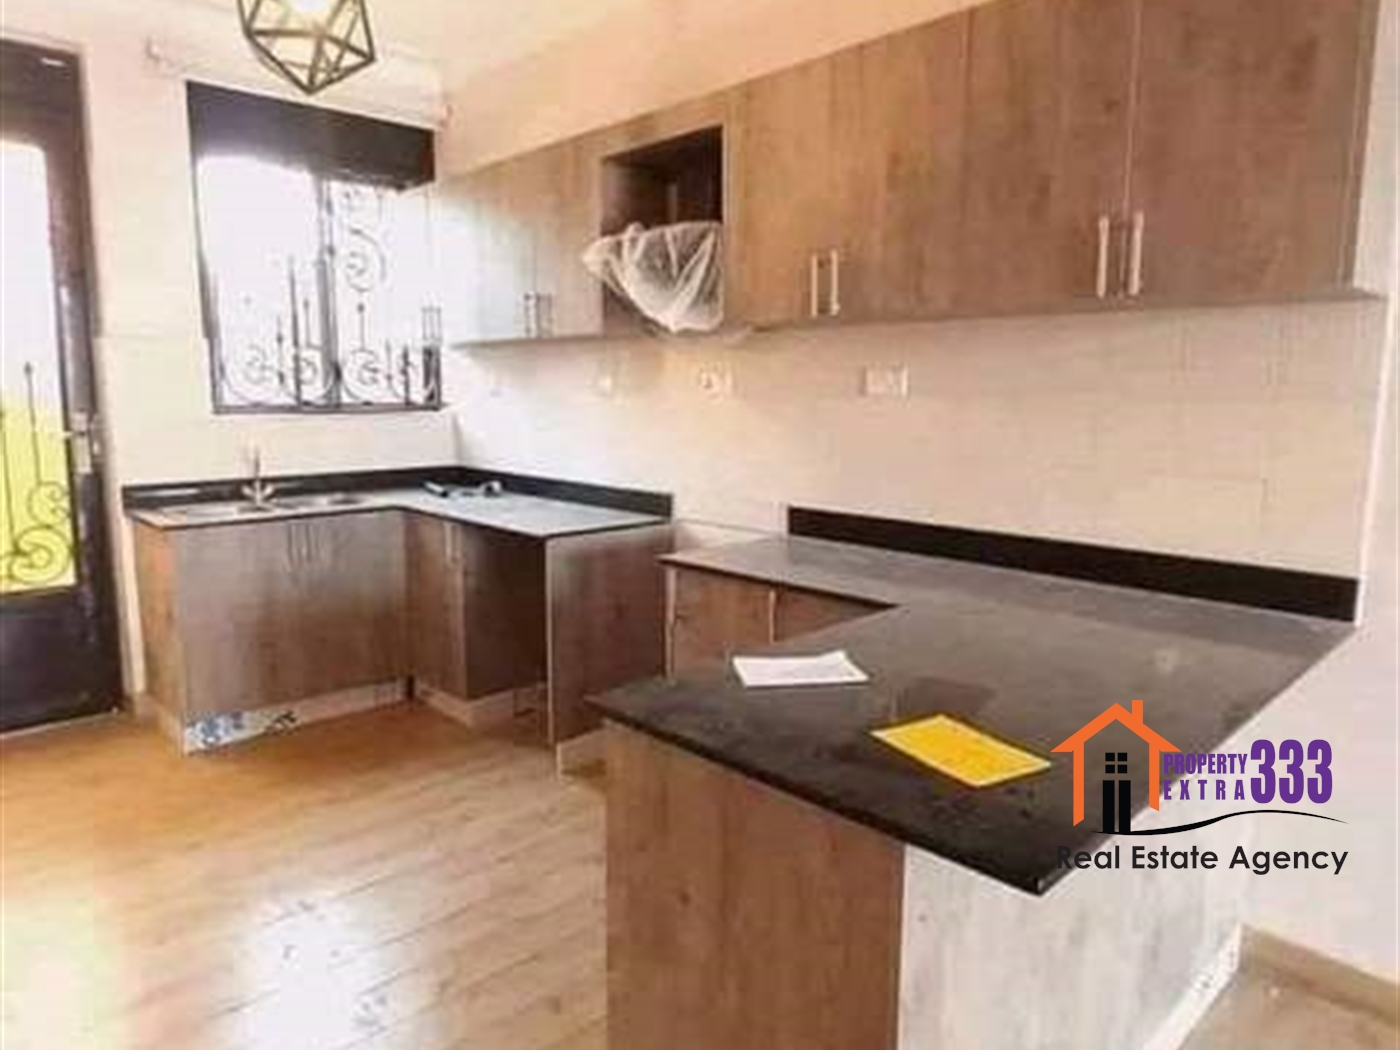 Town House for rent in Kyanja Kampala